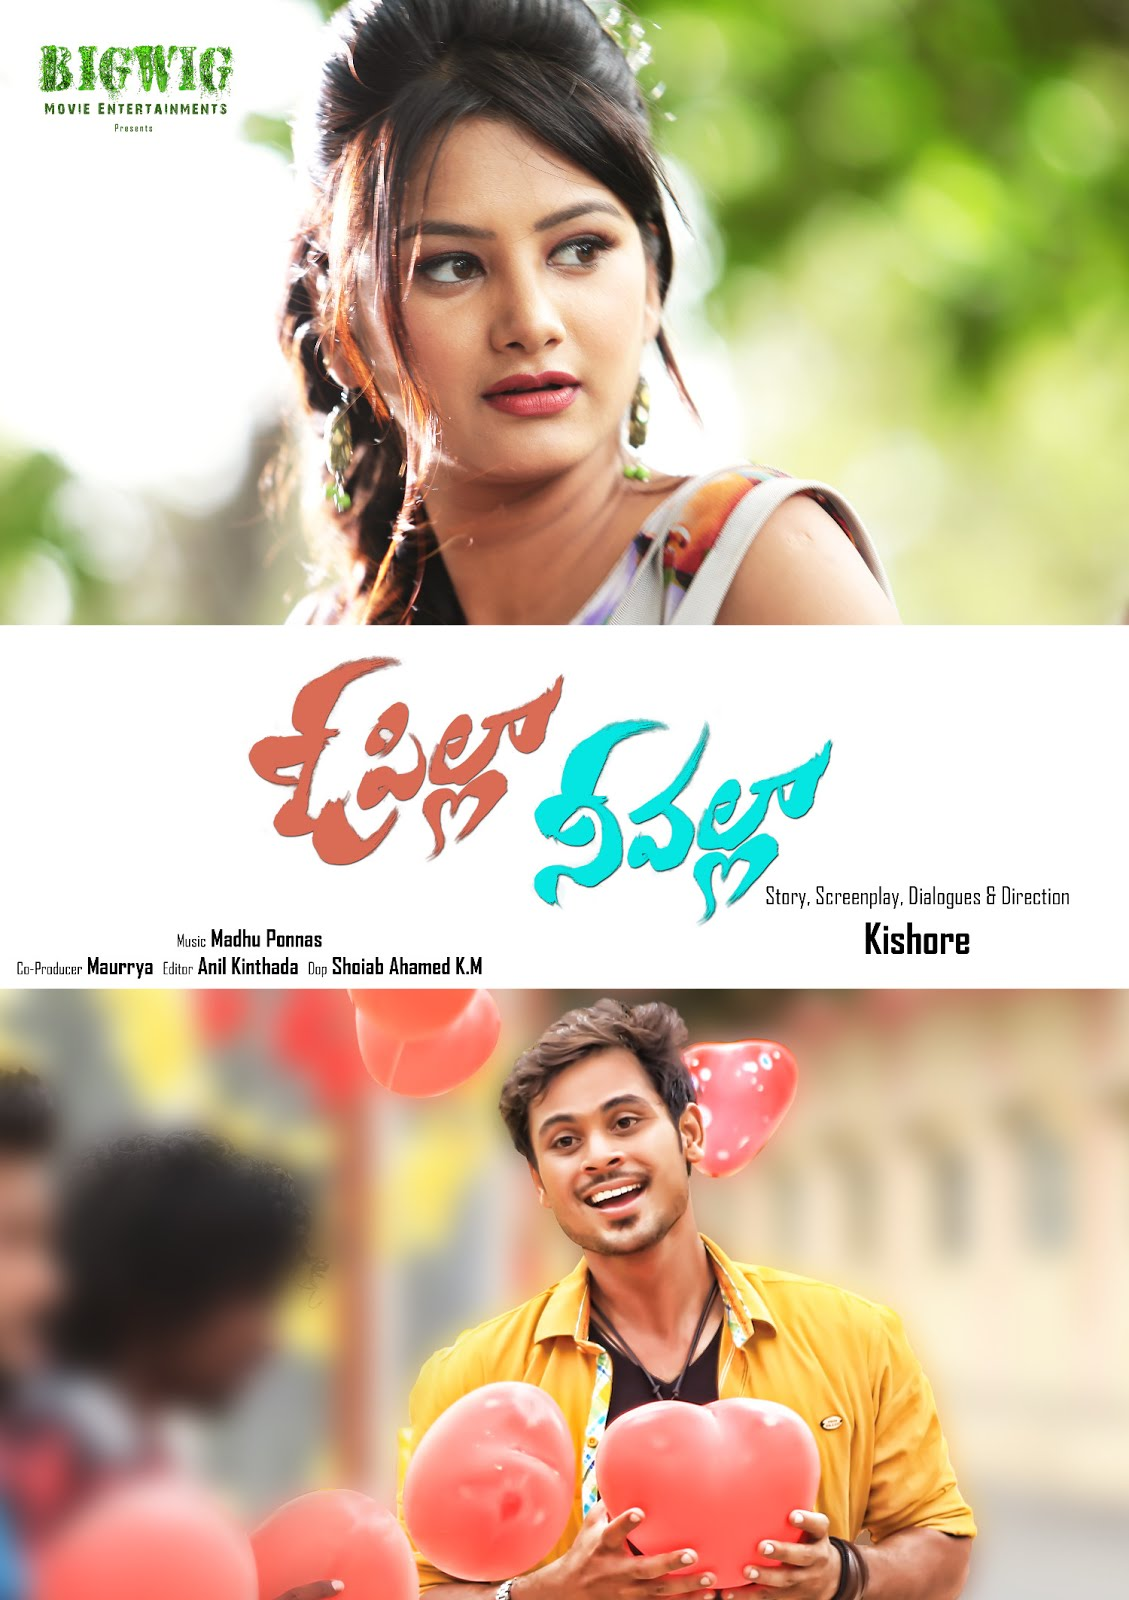 Love Story 2020 (O Pilla Nee Valla) Hindi Dubbed 300MB HDRip 480p